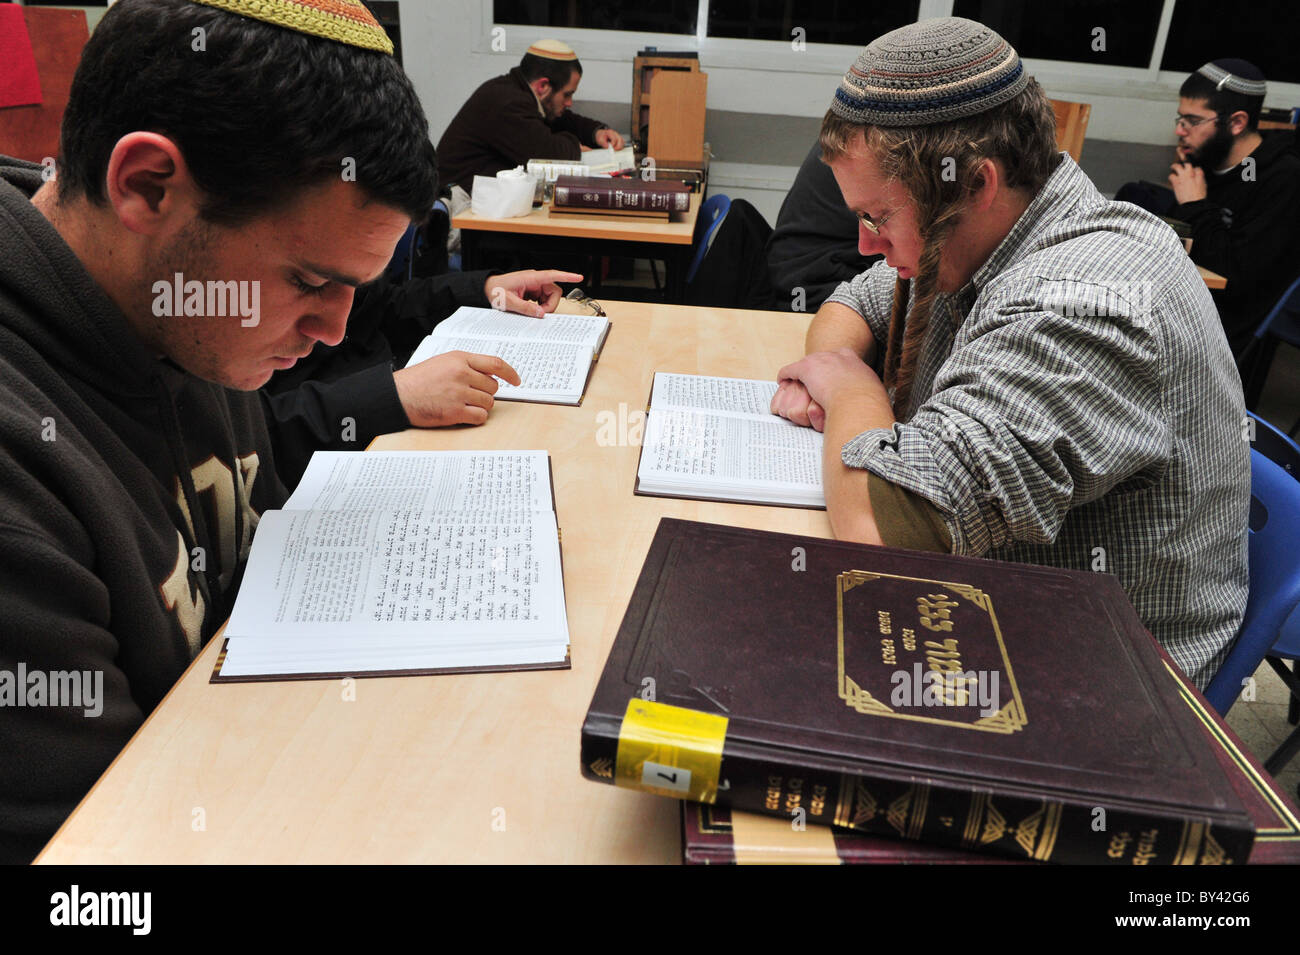 Israeli Jewish man students learning Torah - Stock Image